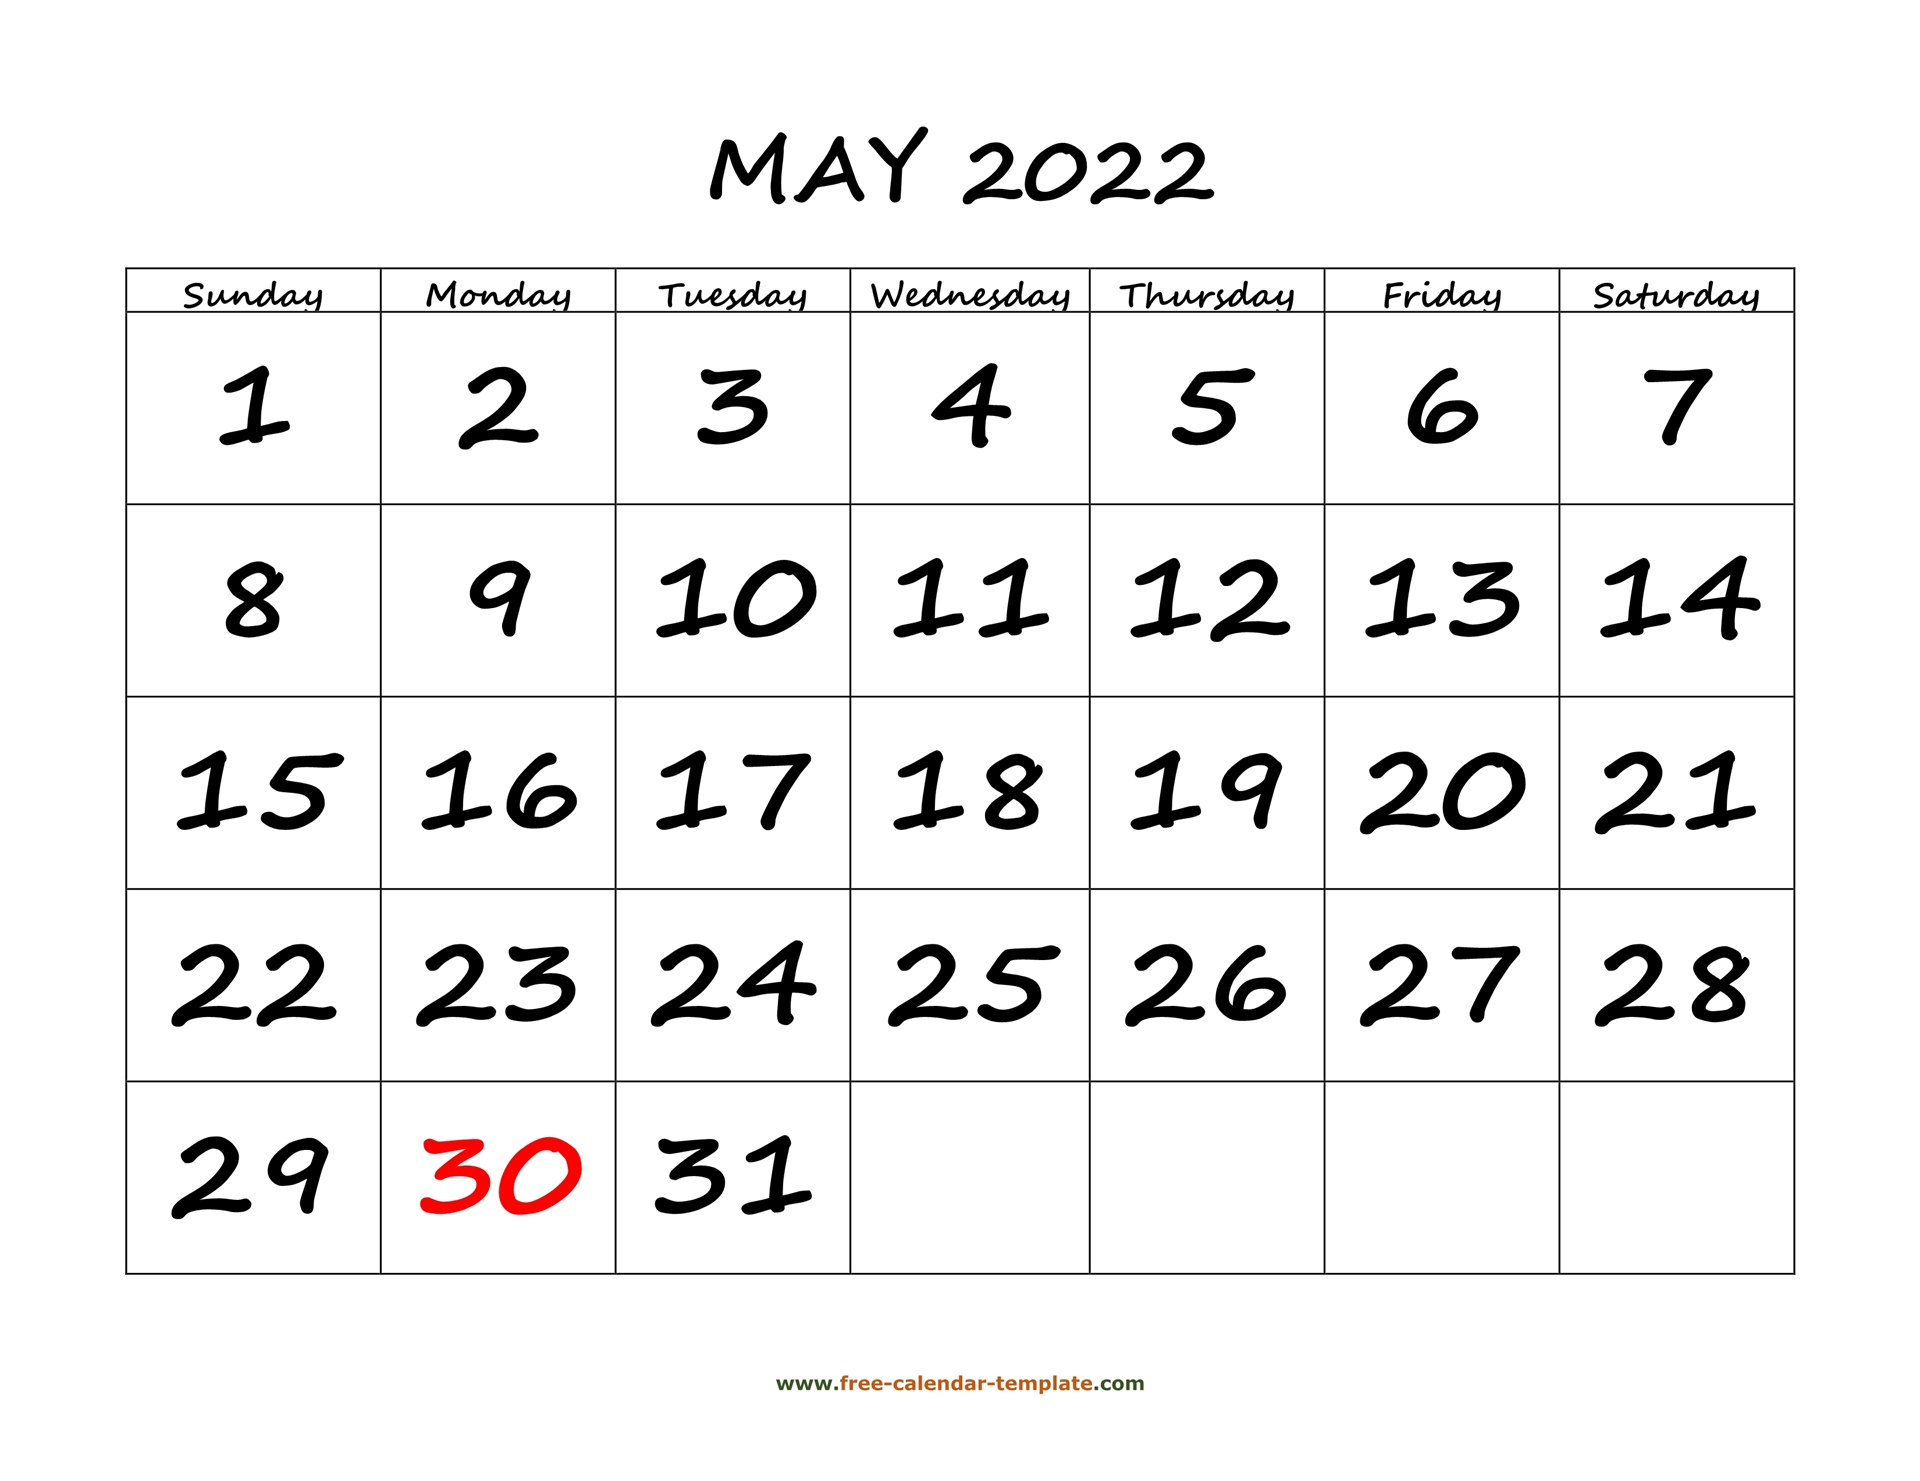 May 2022 Free Calendar Tempplate | Free Calendar Template Within January Calendar 2022 Full Page